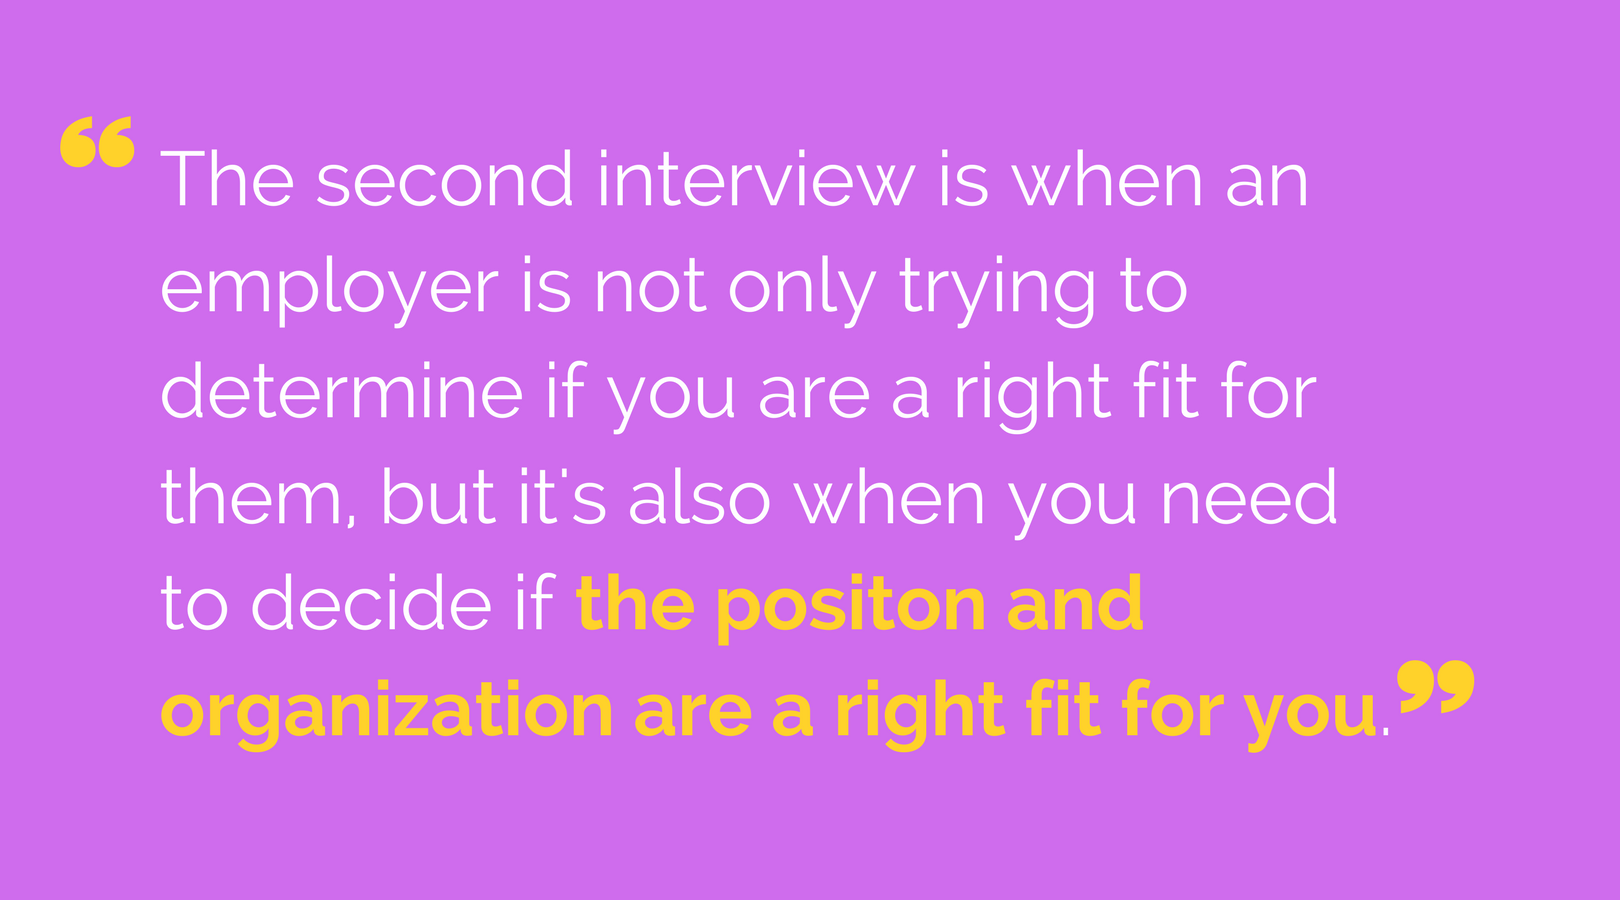 Second Interview Quote.png